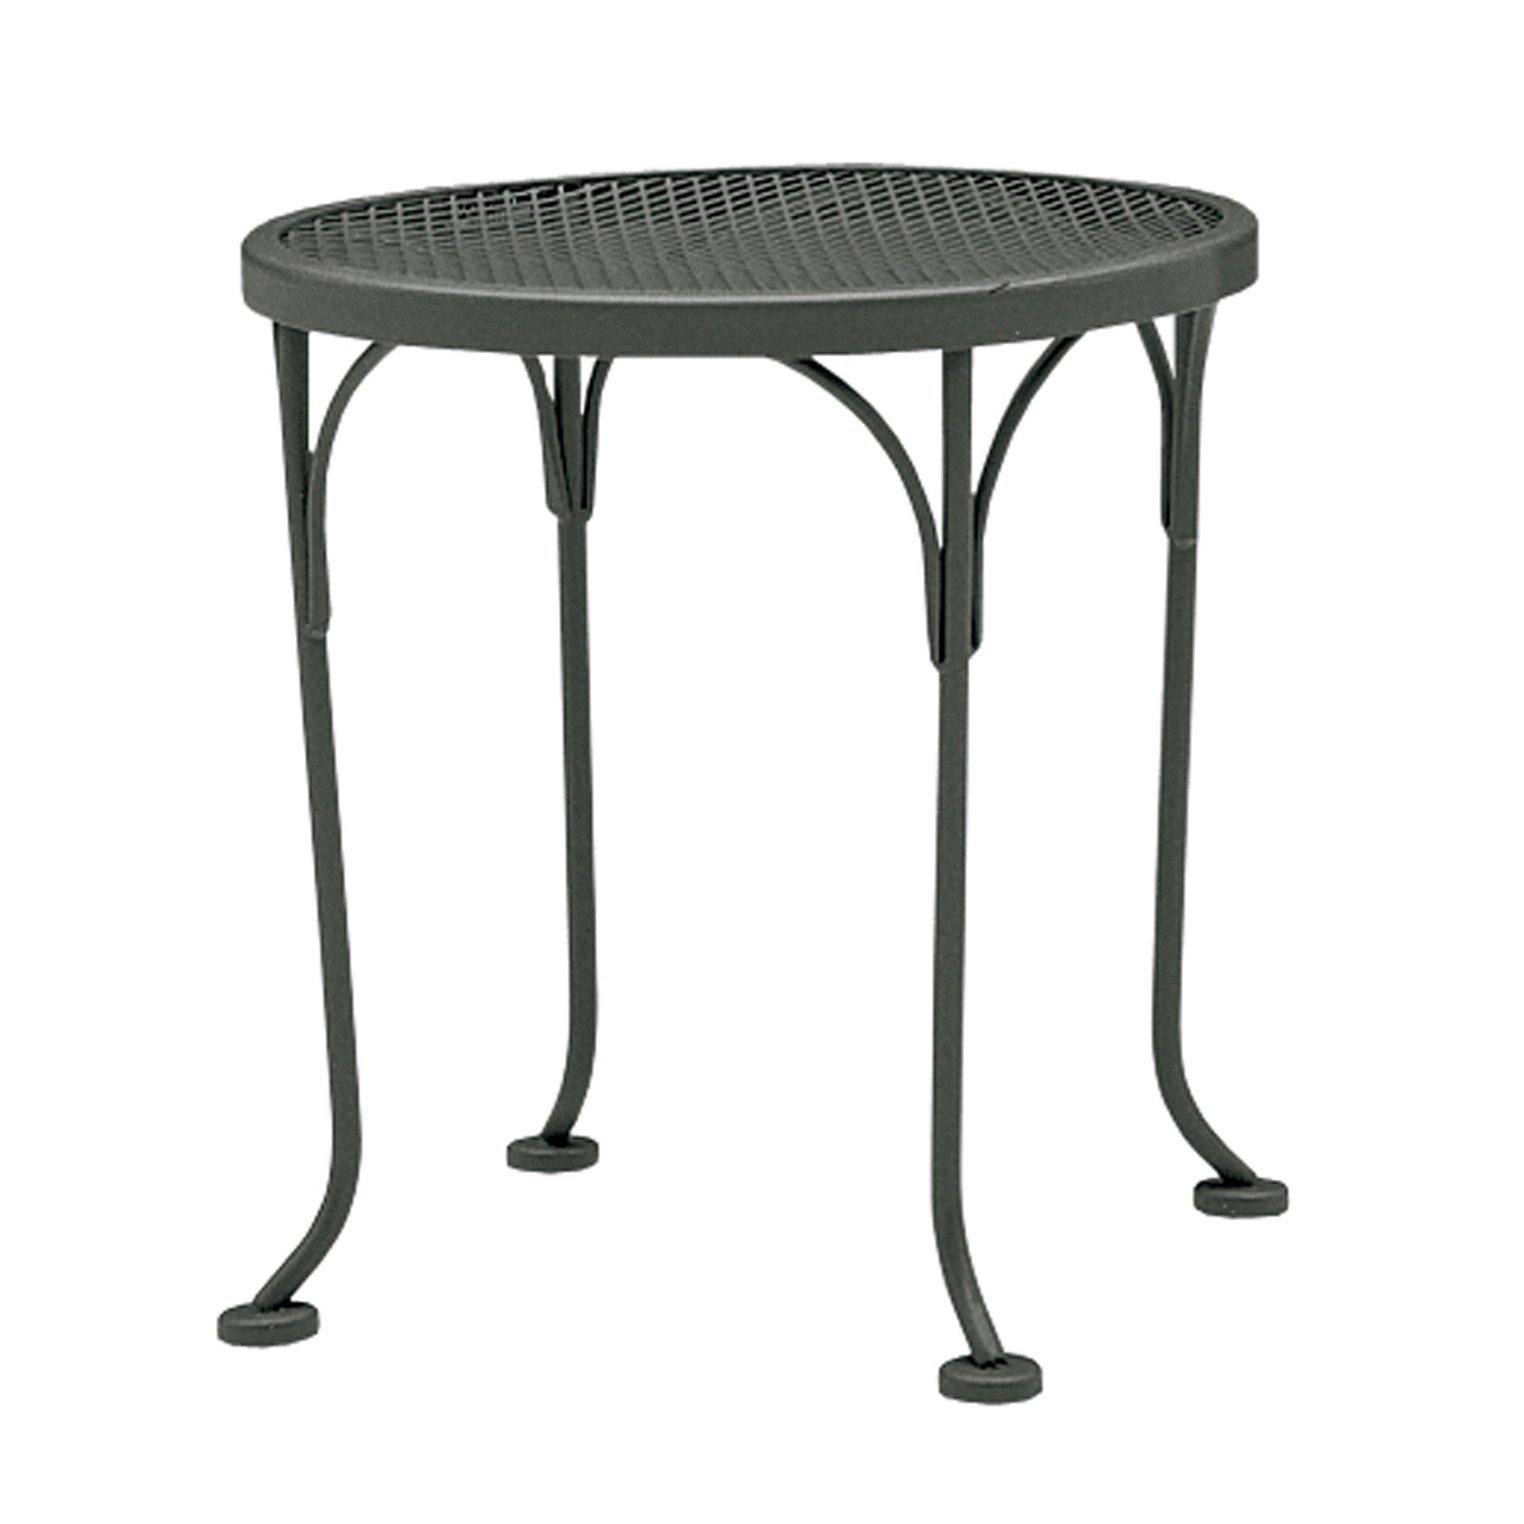 woodard briarwood round occasional wrought iron side table reviews patio accent target outdoor small coffee designs home theater furniture narrow end cherry night lamp retro